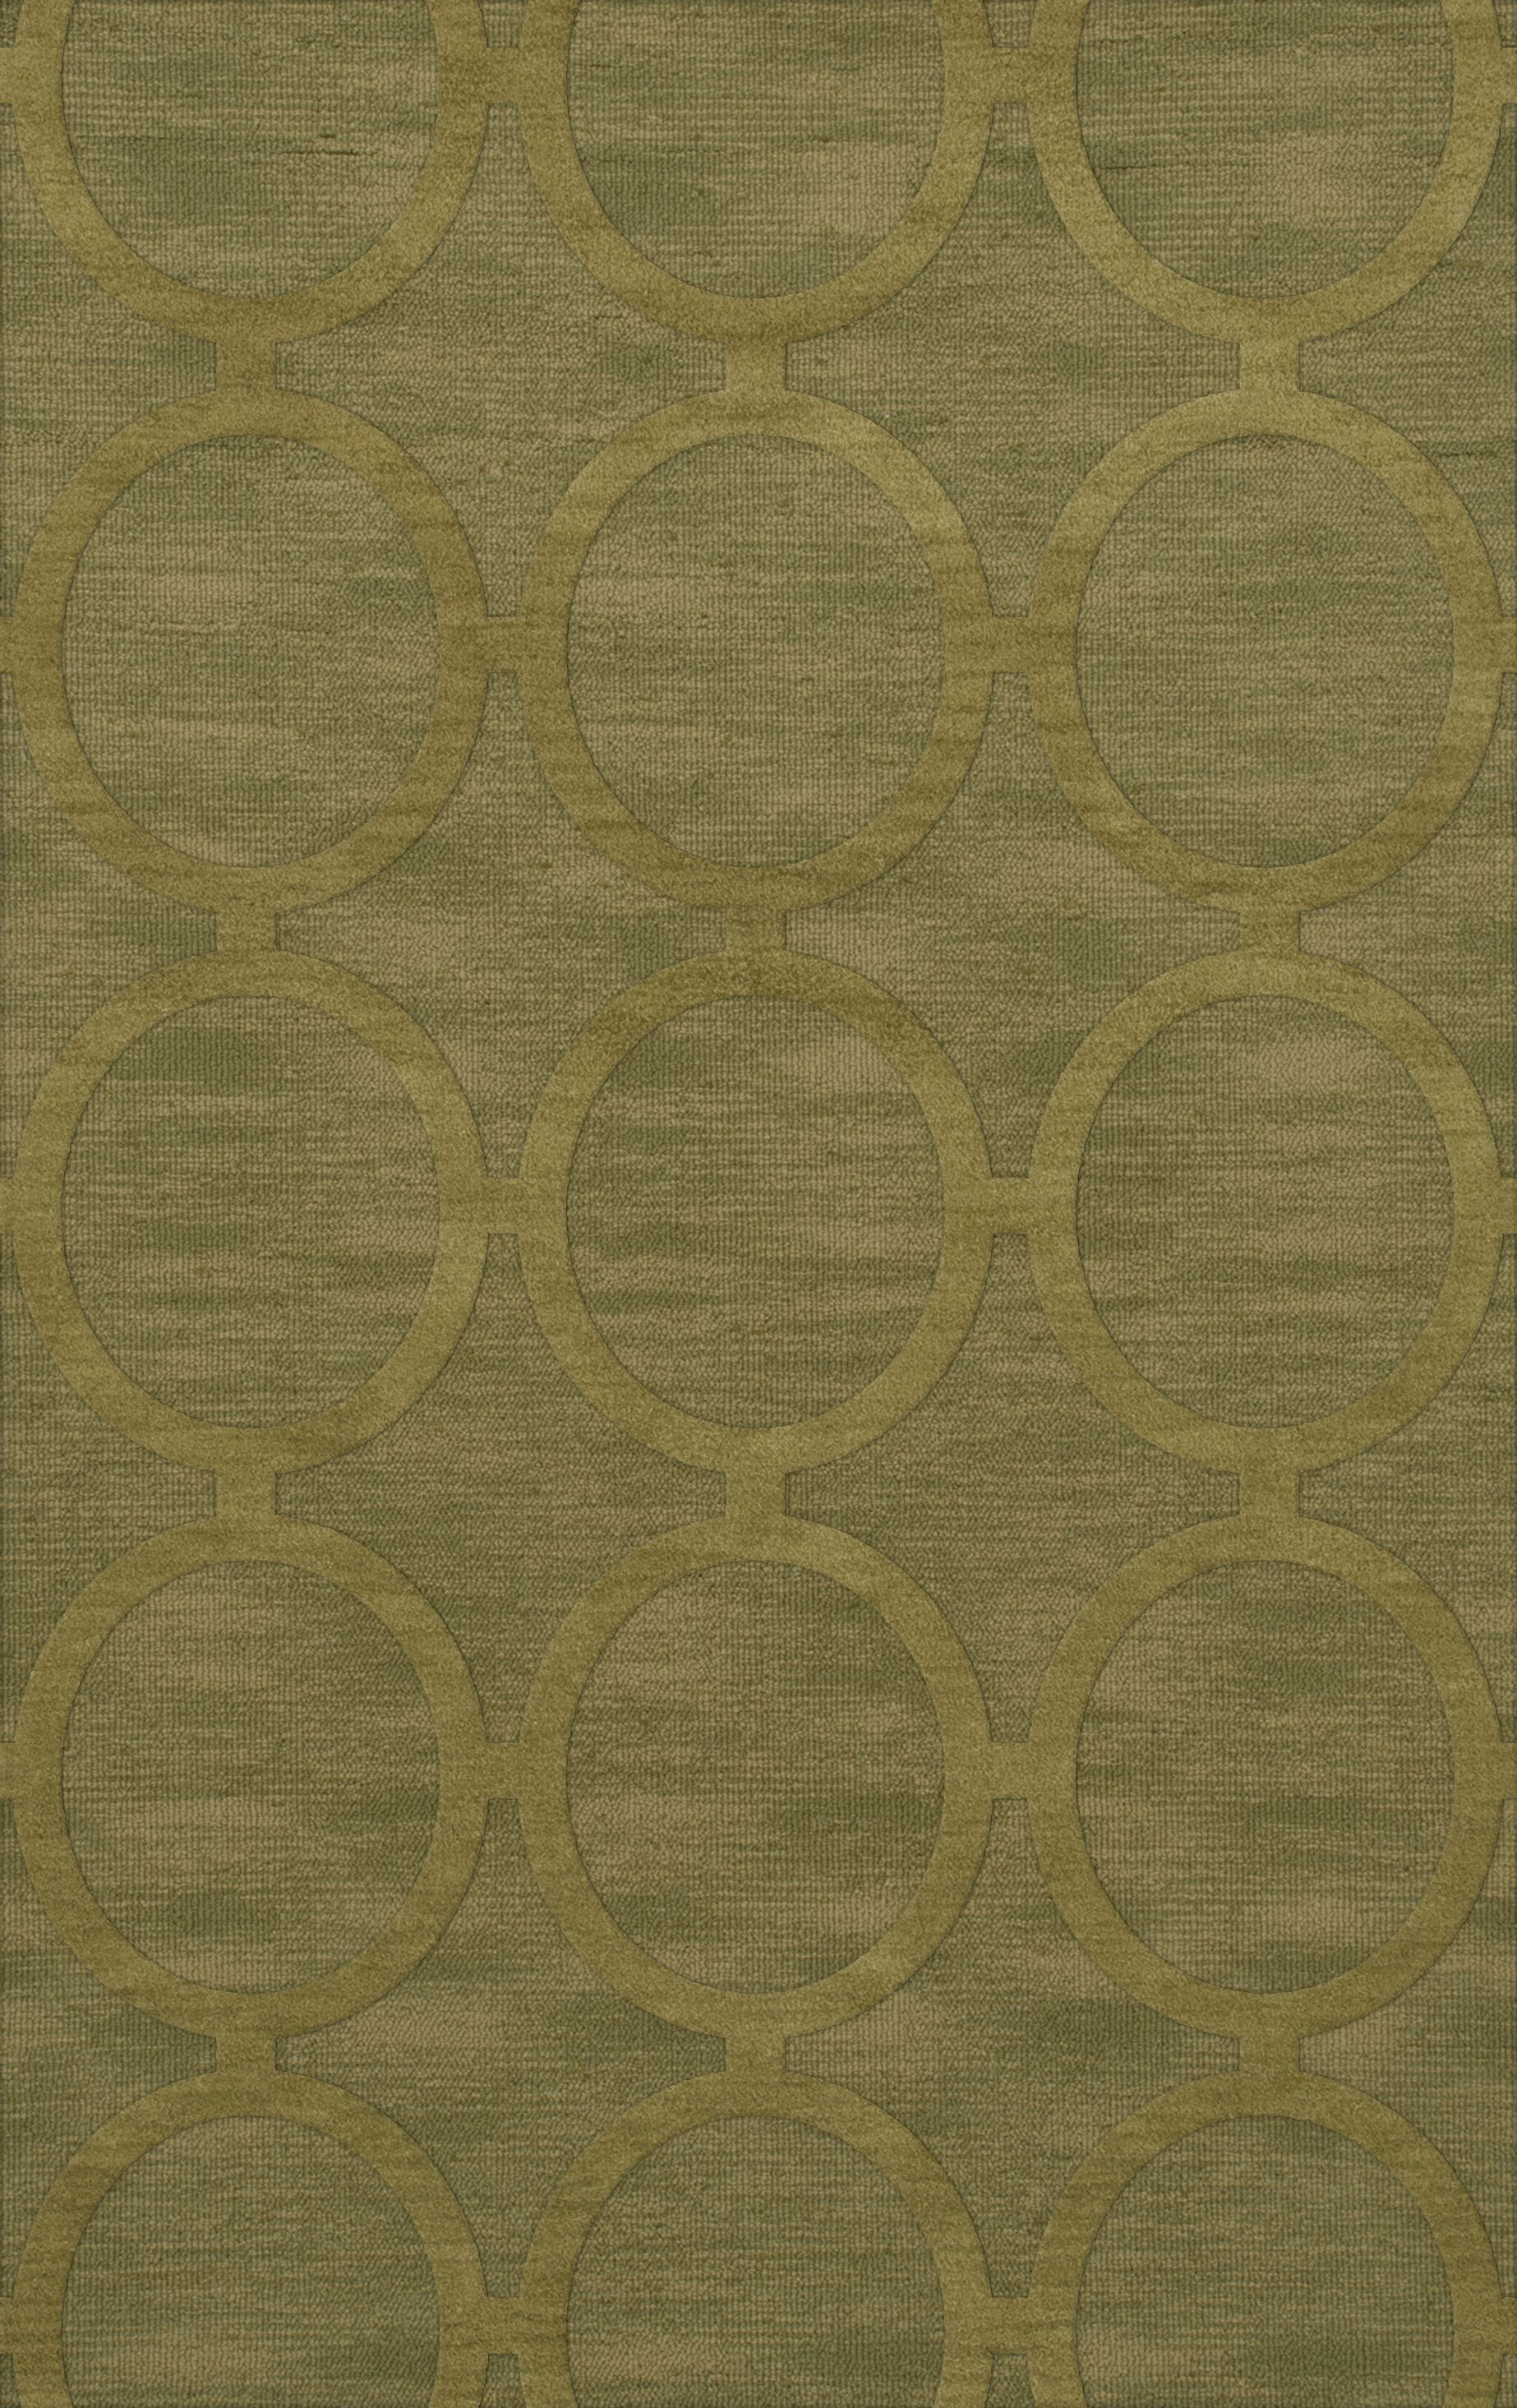 Dover Tufted Wool Pear Area Rug Rug Size: Rectangle 9' x 12'